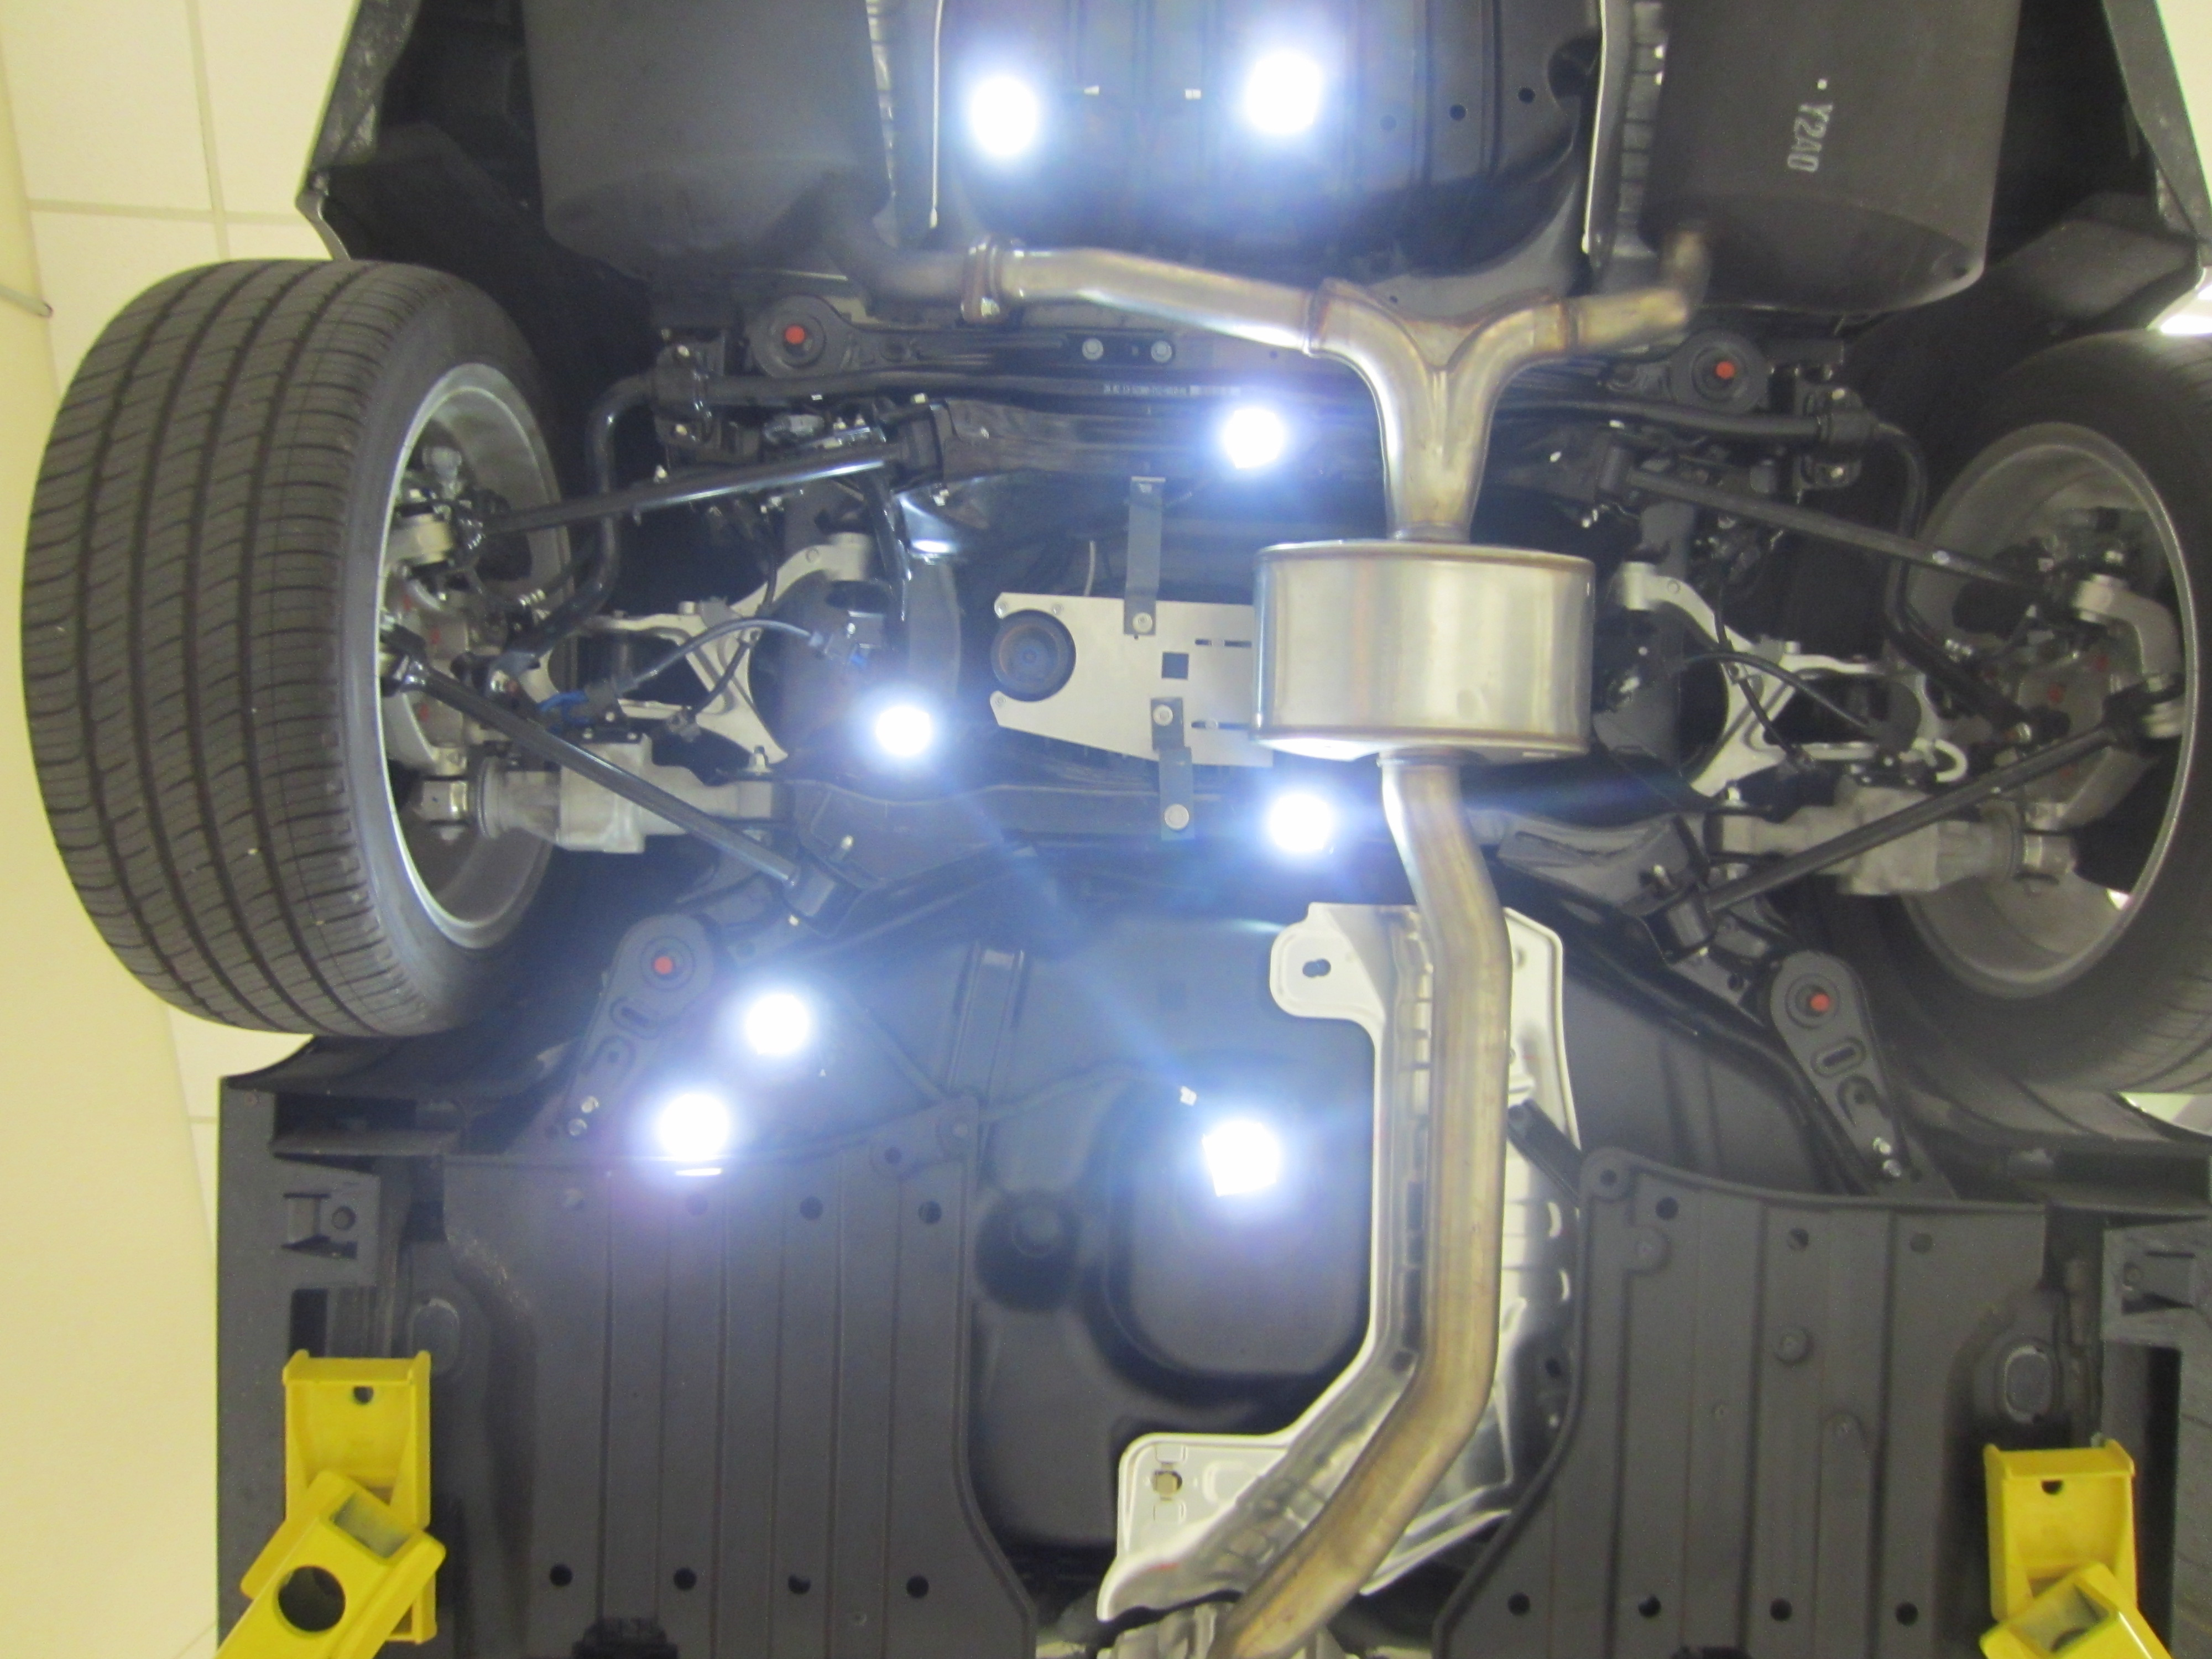 View from the underside of a research vehicle equipped with the Southwest Research Institute's Ranger localization solution for autonomous vehicles